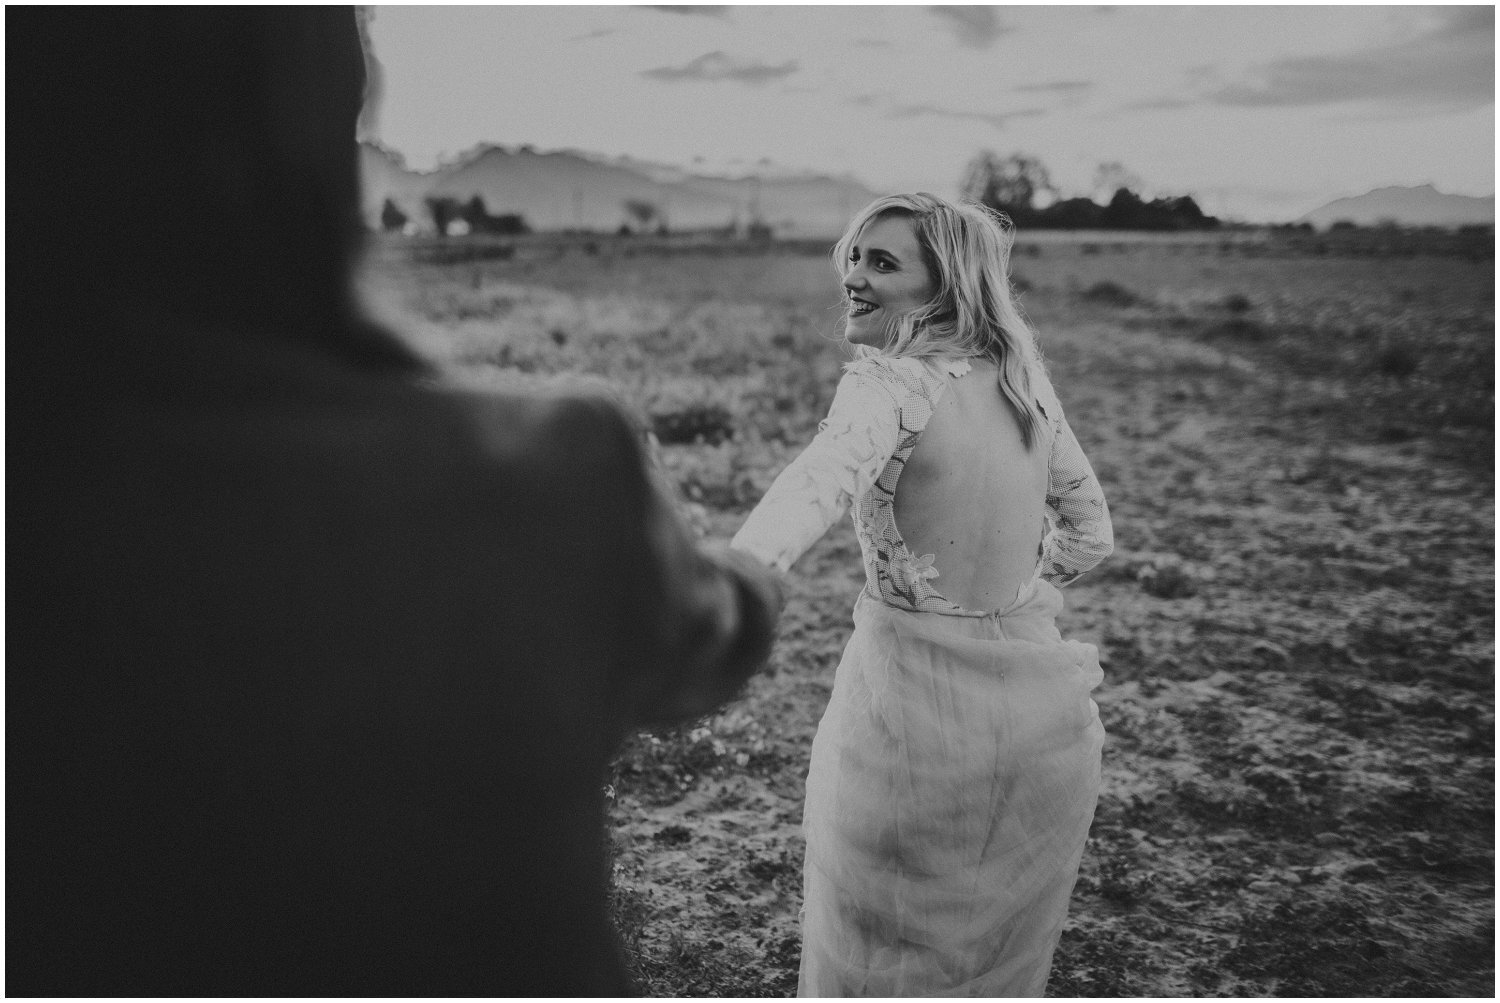 Top Wedding Photographer Cape Town South Africa Artistic Creative Documentary Wedding Photography Rue Kruger_1567.jpg